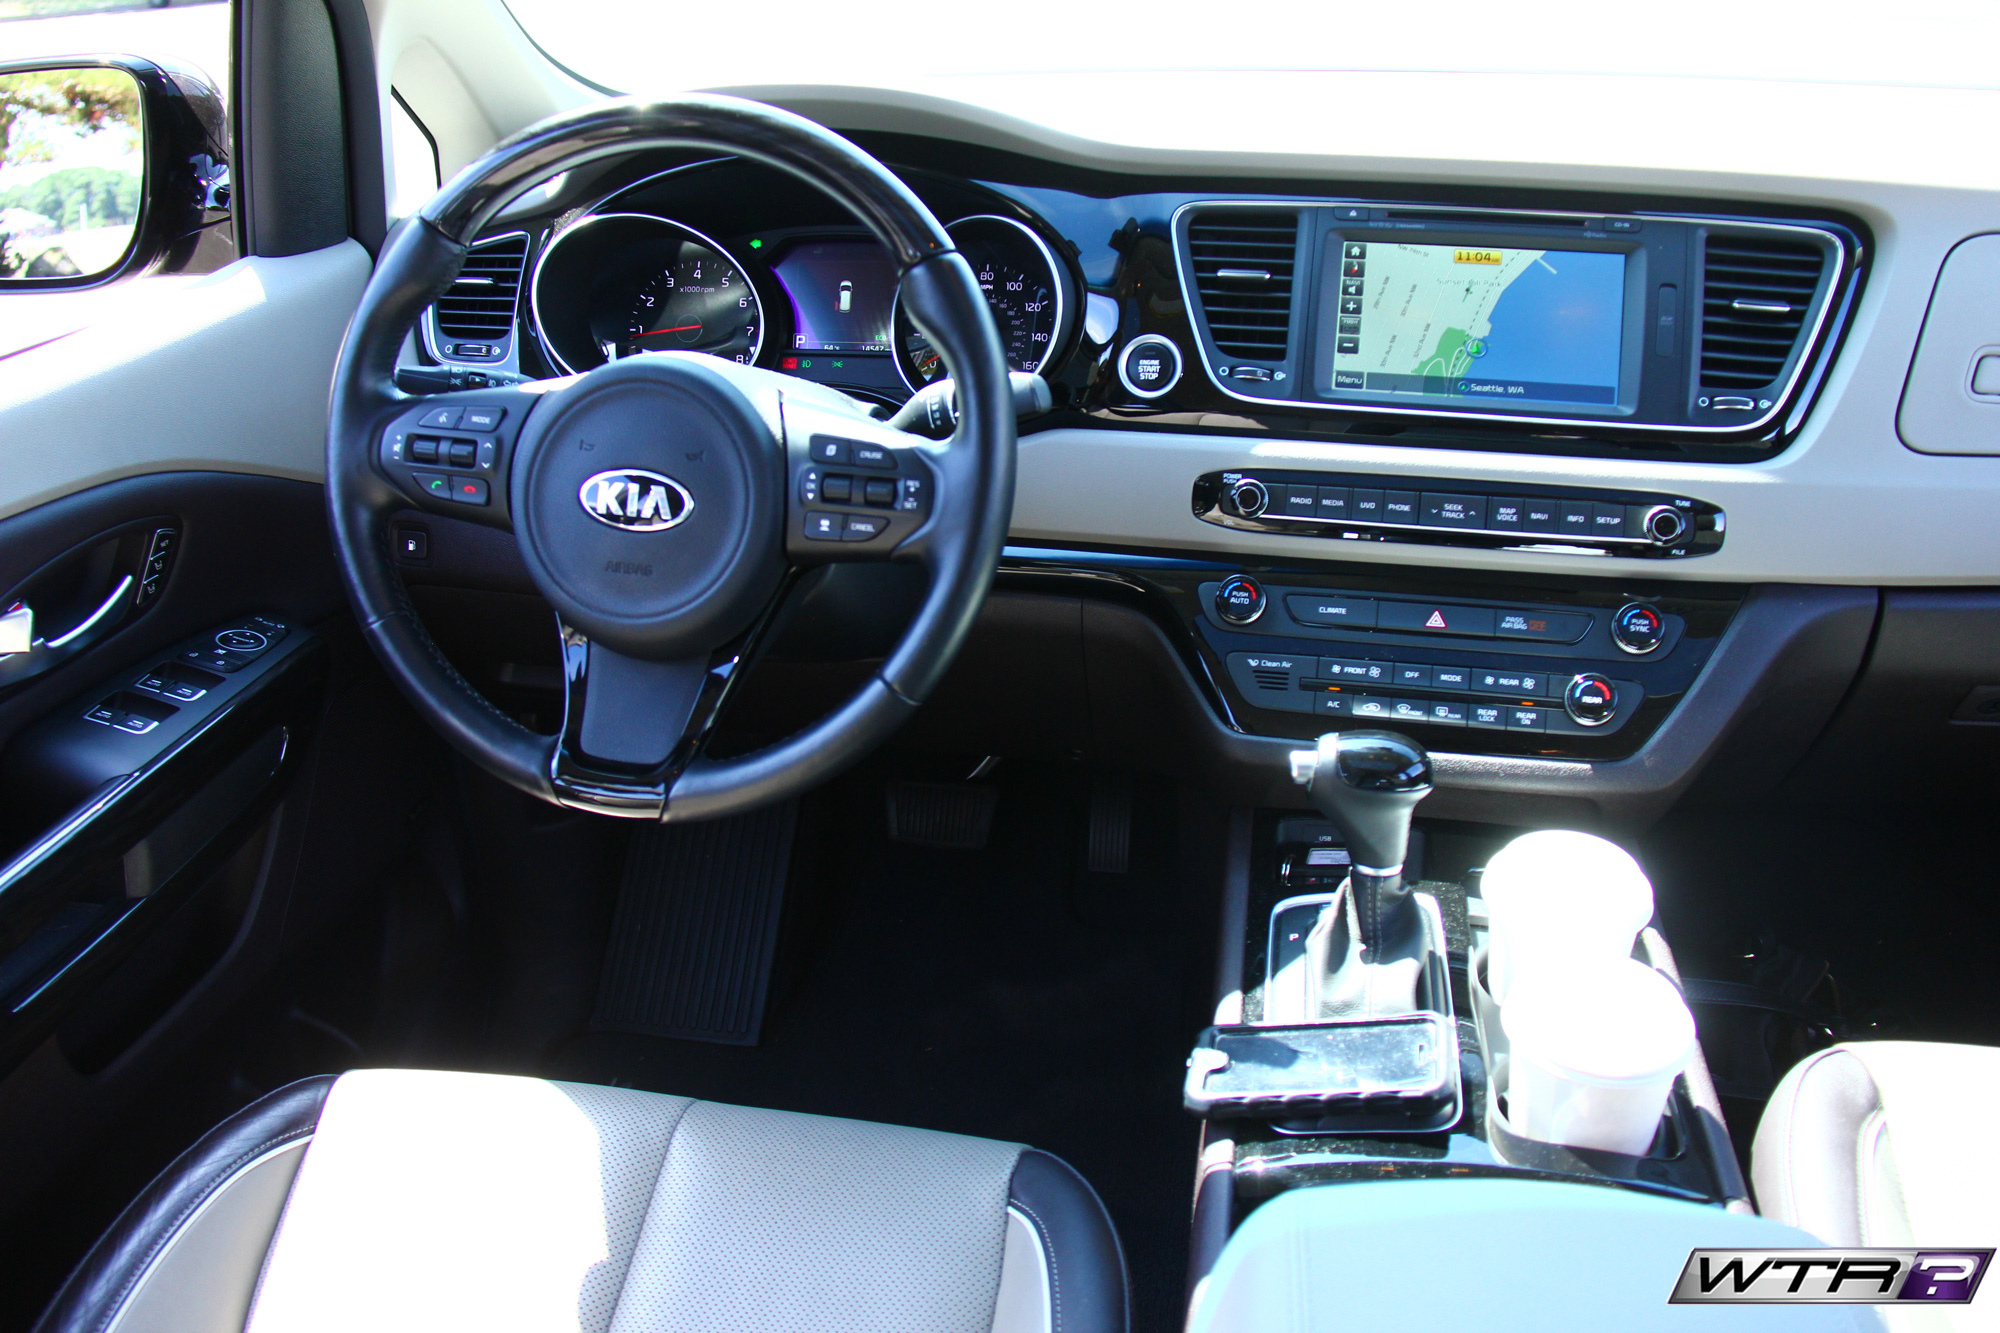 2016_kia_sedona_interio_steering_wheel